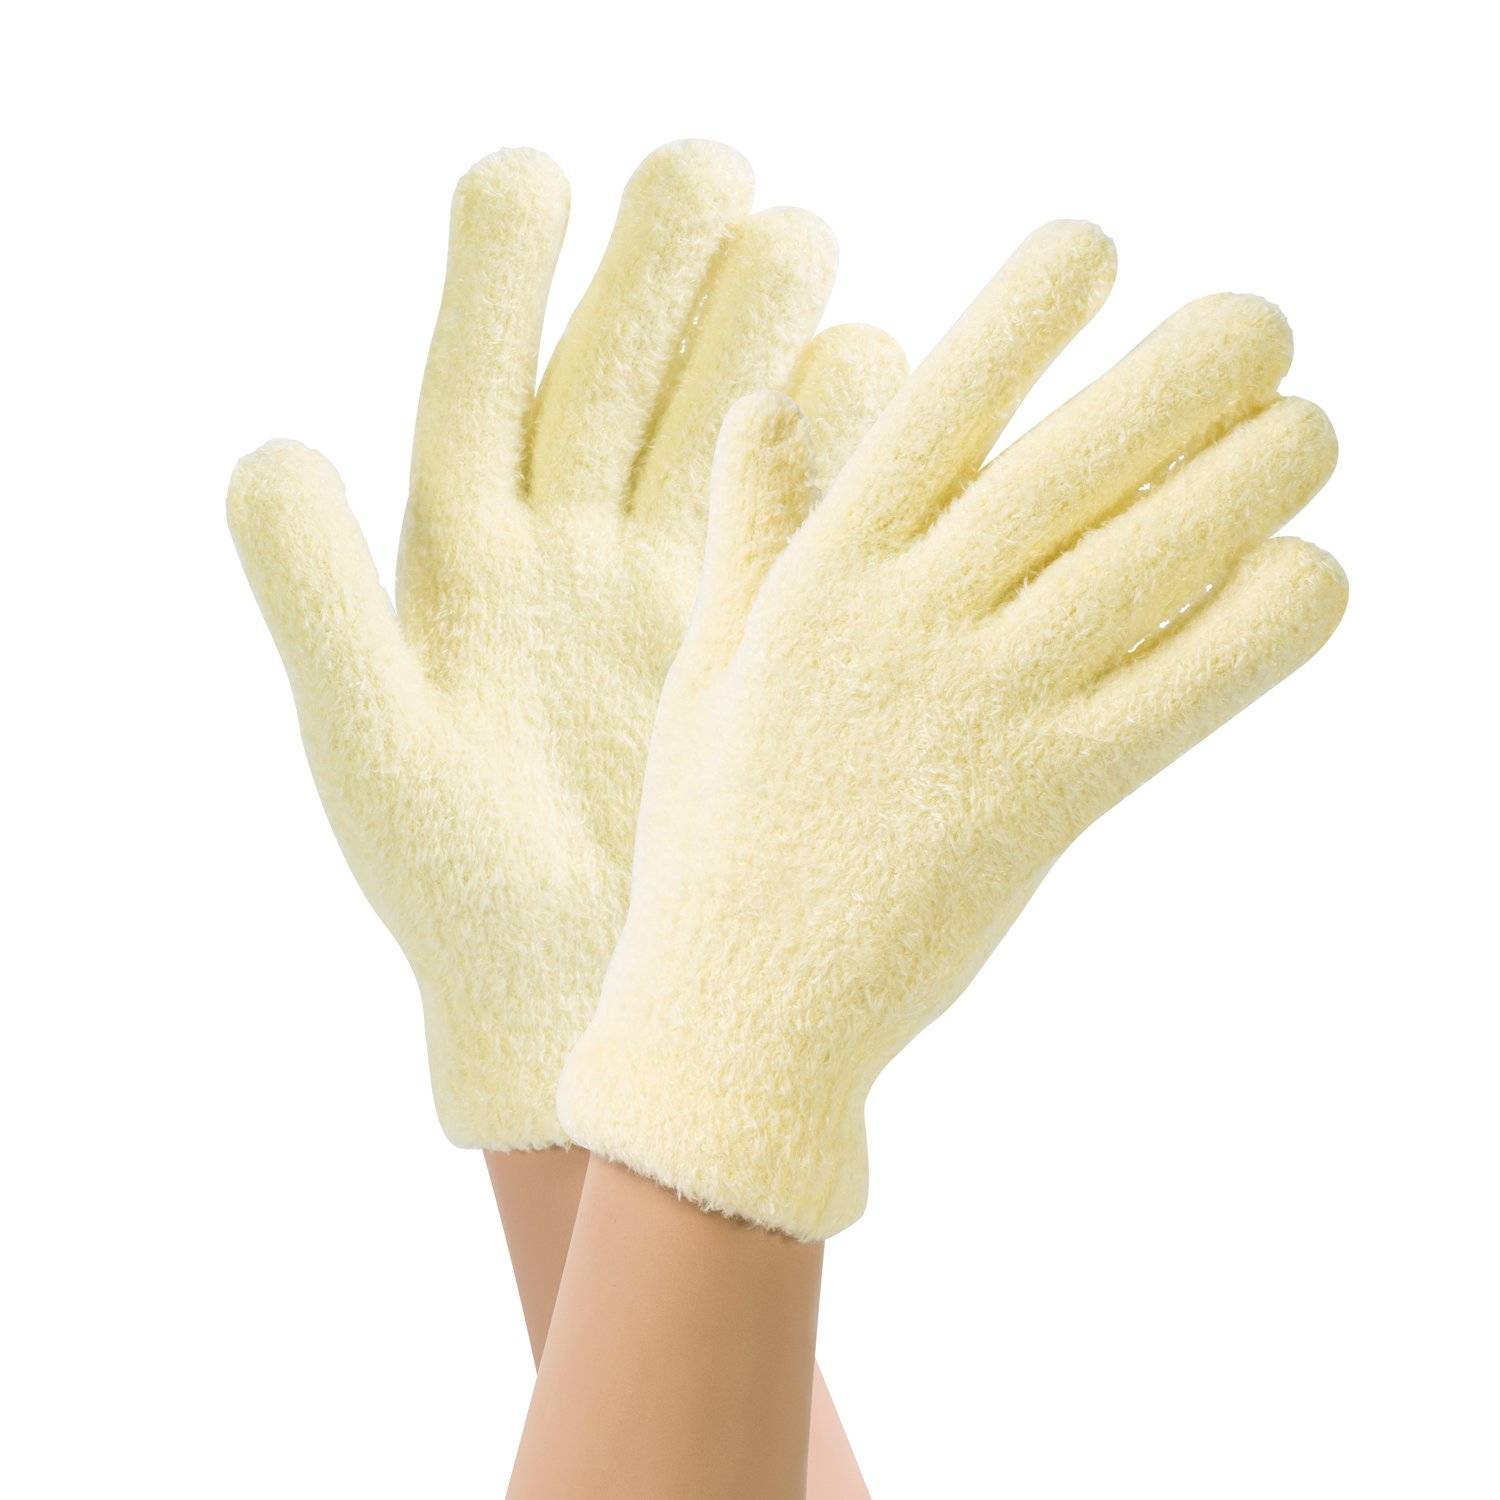 Bucky Luxuriously Plush Aloe-Infused Moisturizing Spa Gloves To Protect Manicures, Soften Skin, & Provide Comfort While You Sleep - Pale Yellow G100PYE